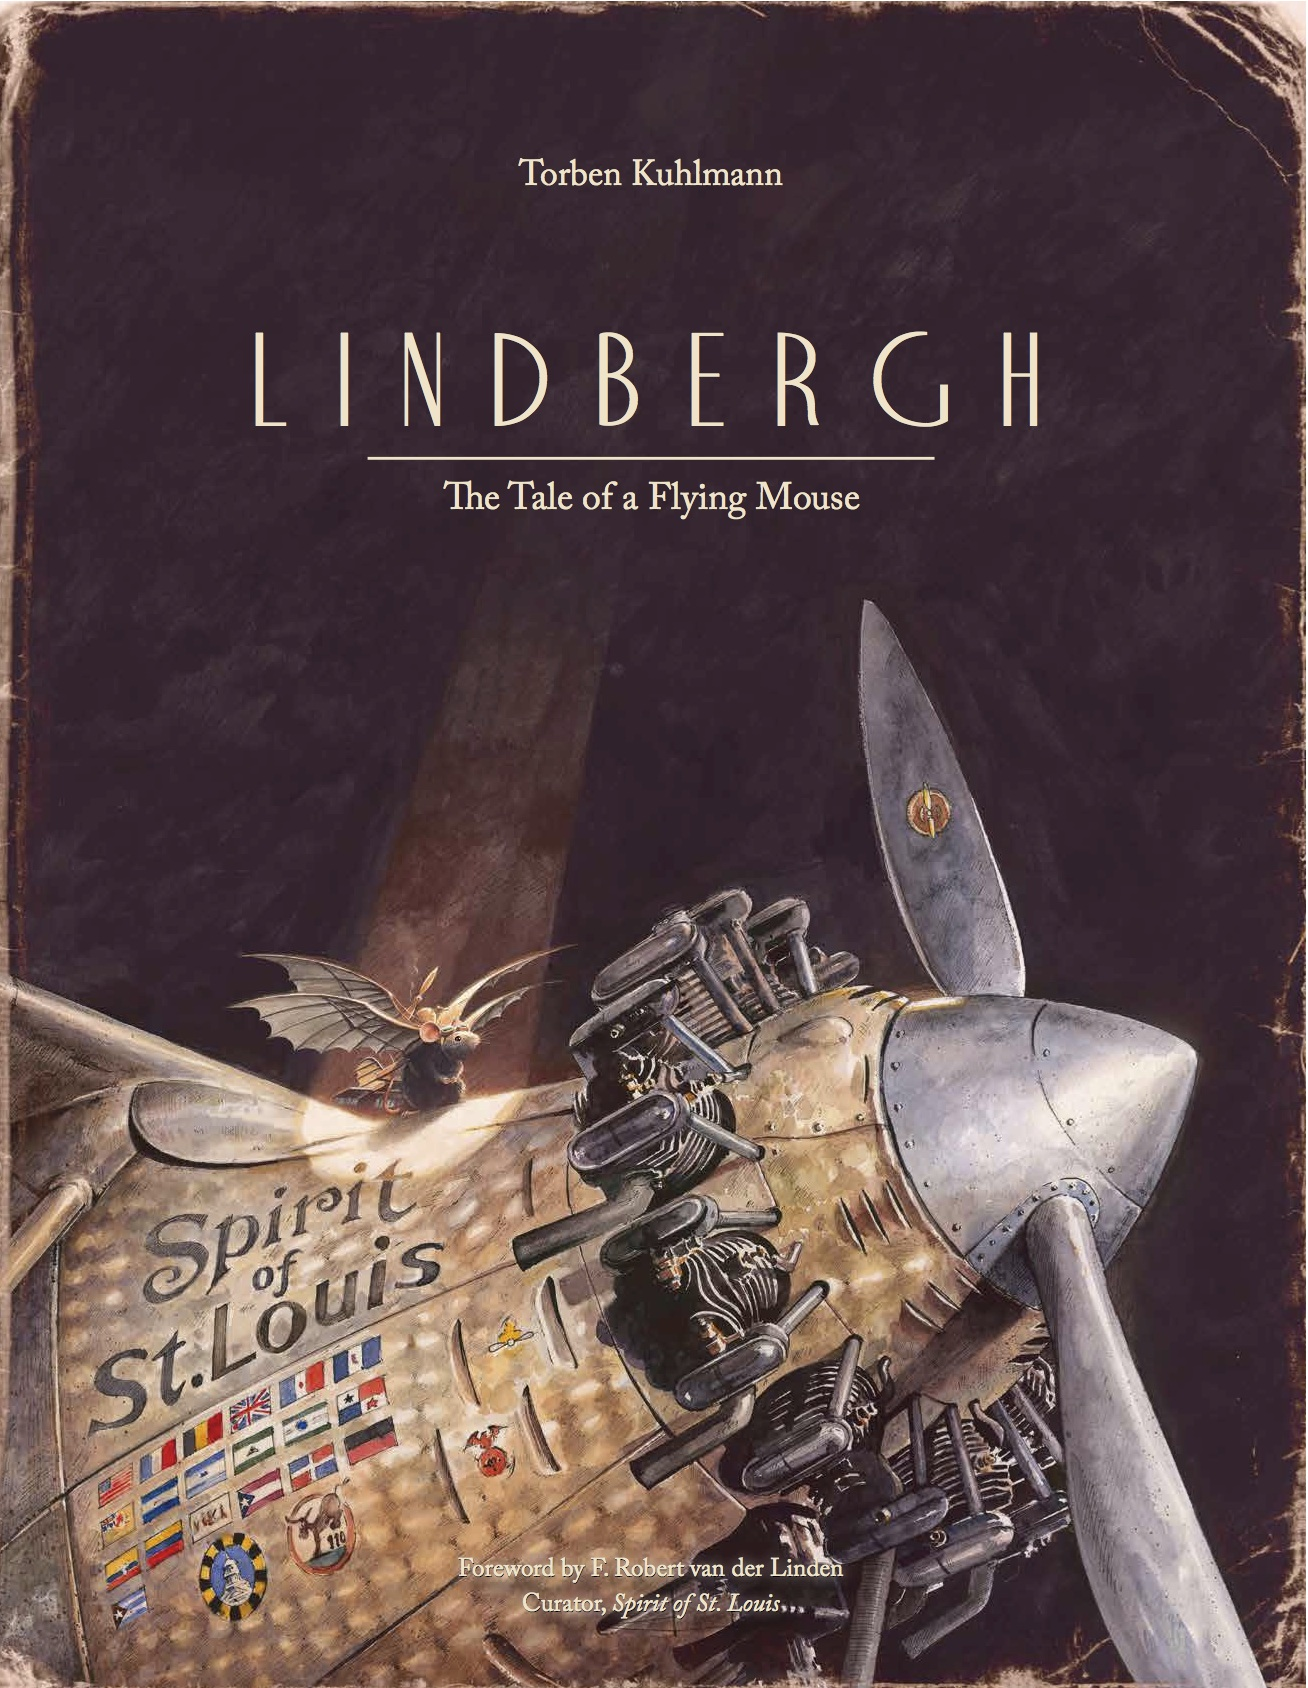 Image result for lindbergh the tale of a flying mouse cover